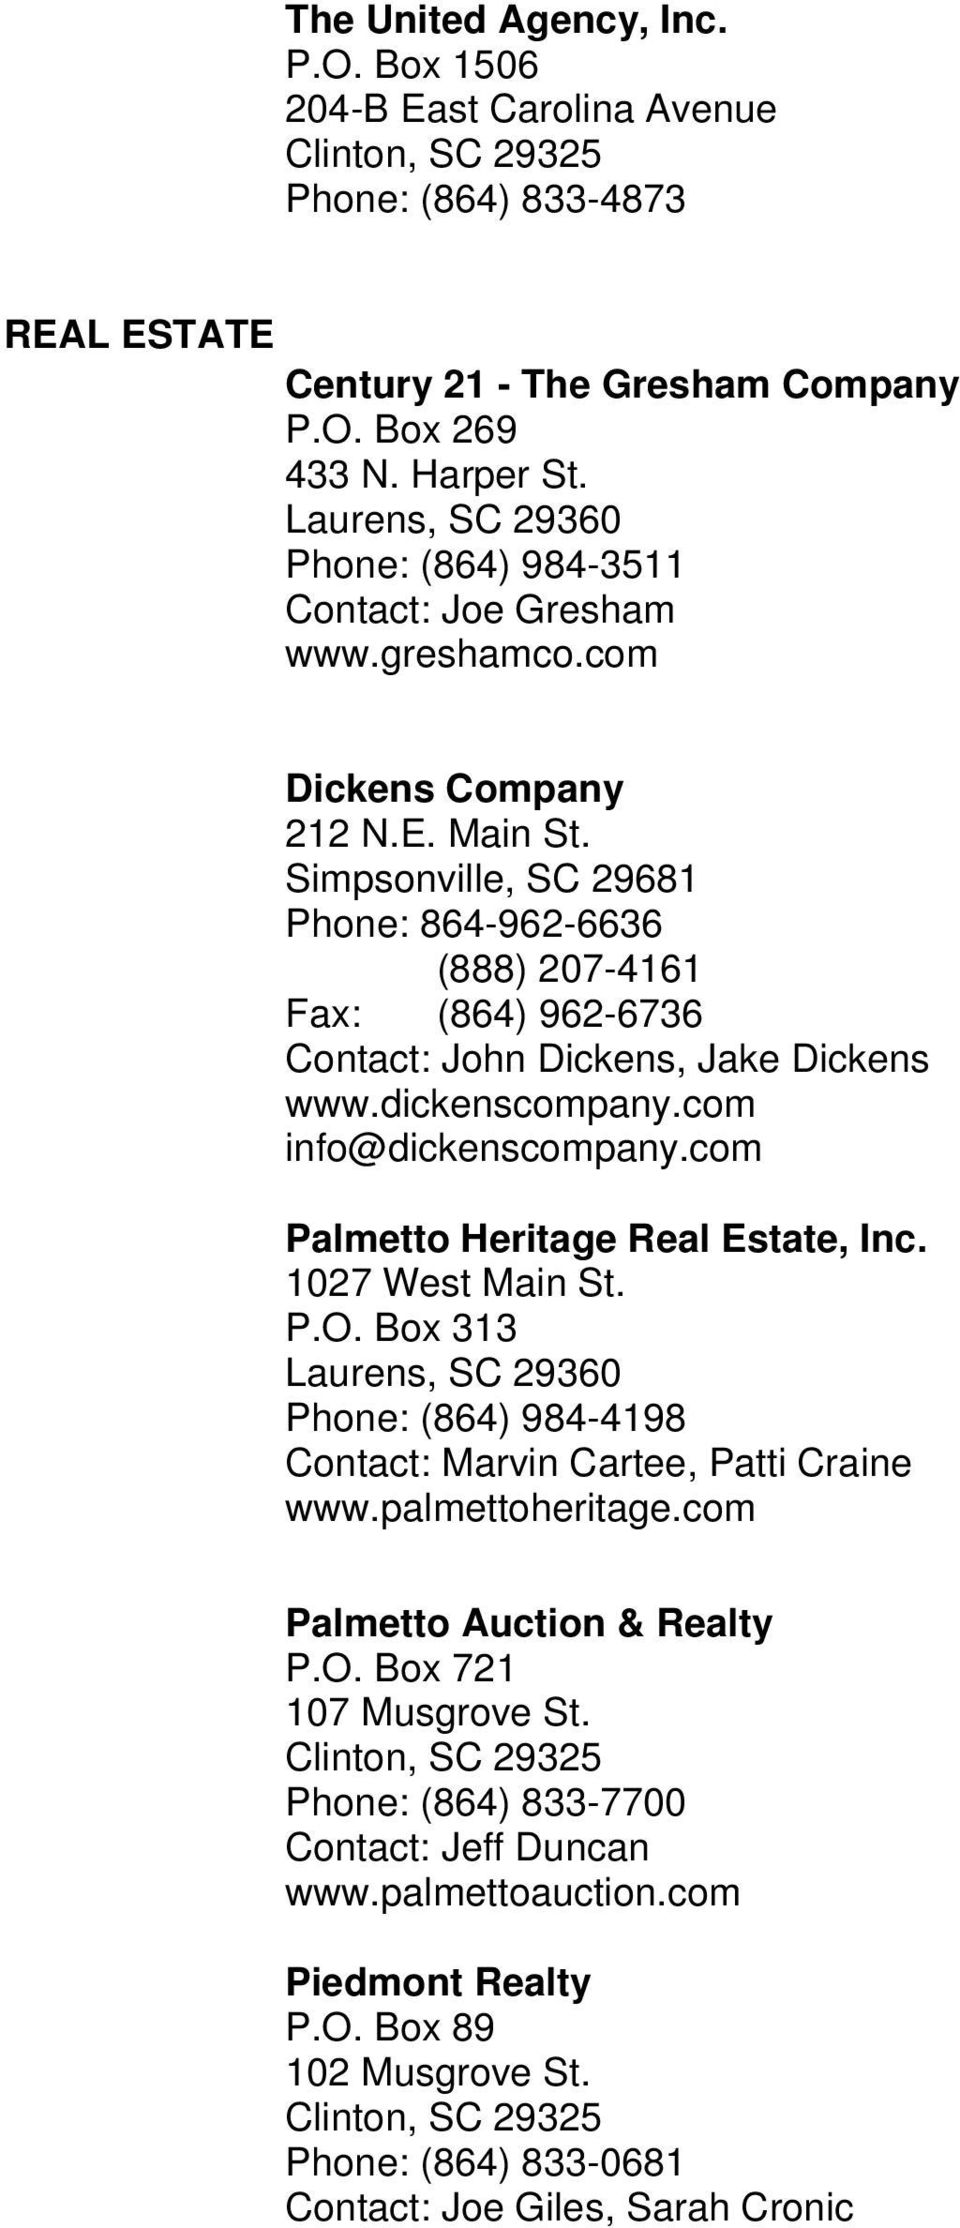 Simpsonville, SC 29681 Phone: 864-962-6636 (888) 207-4161 Fax: (864) 962-6736 Contact: John Dickens, Jake Dickens www.dickenscompany.com info@dickenscompany.com Palmetto Heritage Real Estate, Inc.